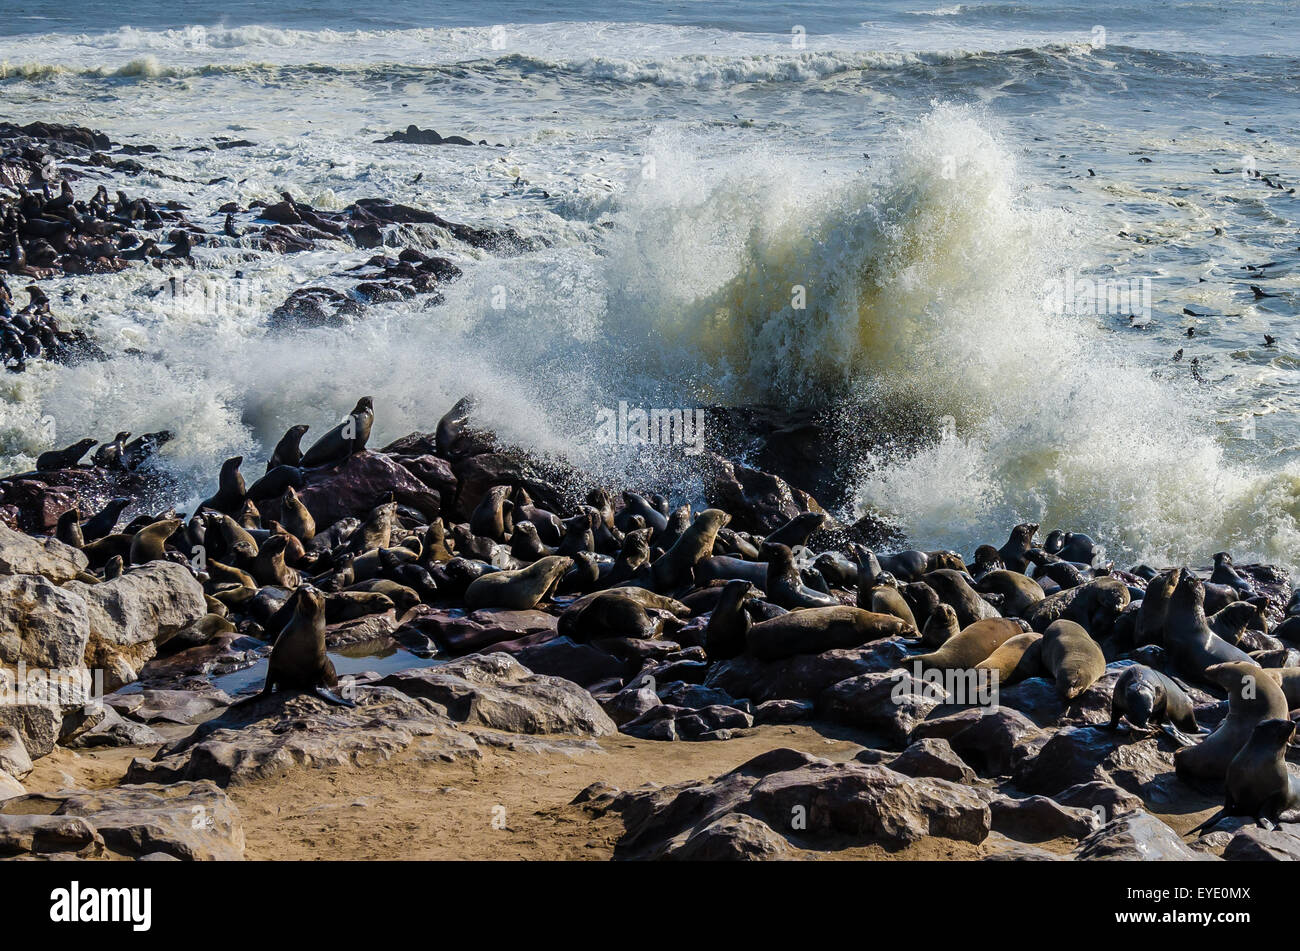 Sealion colony and pounding waves, Cape Cross, Namibia - Stock Image